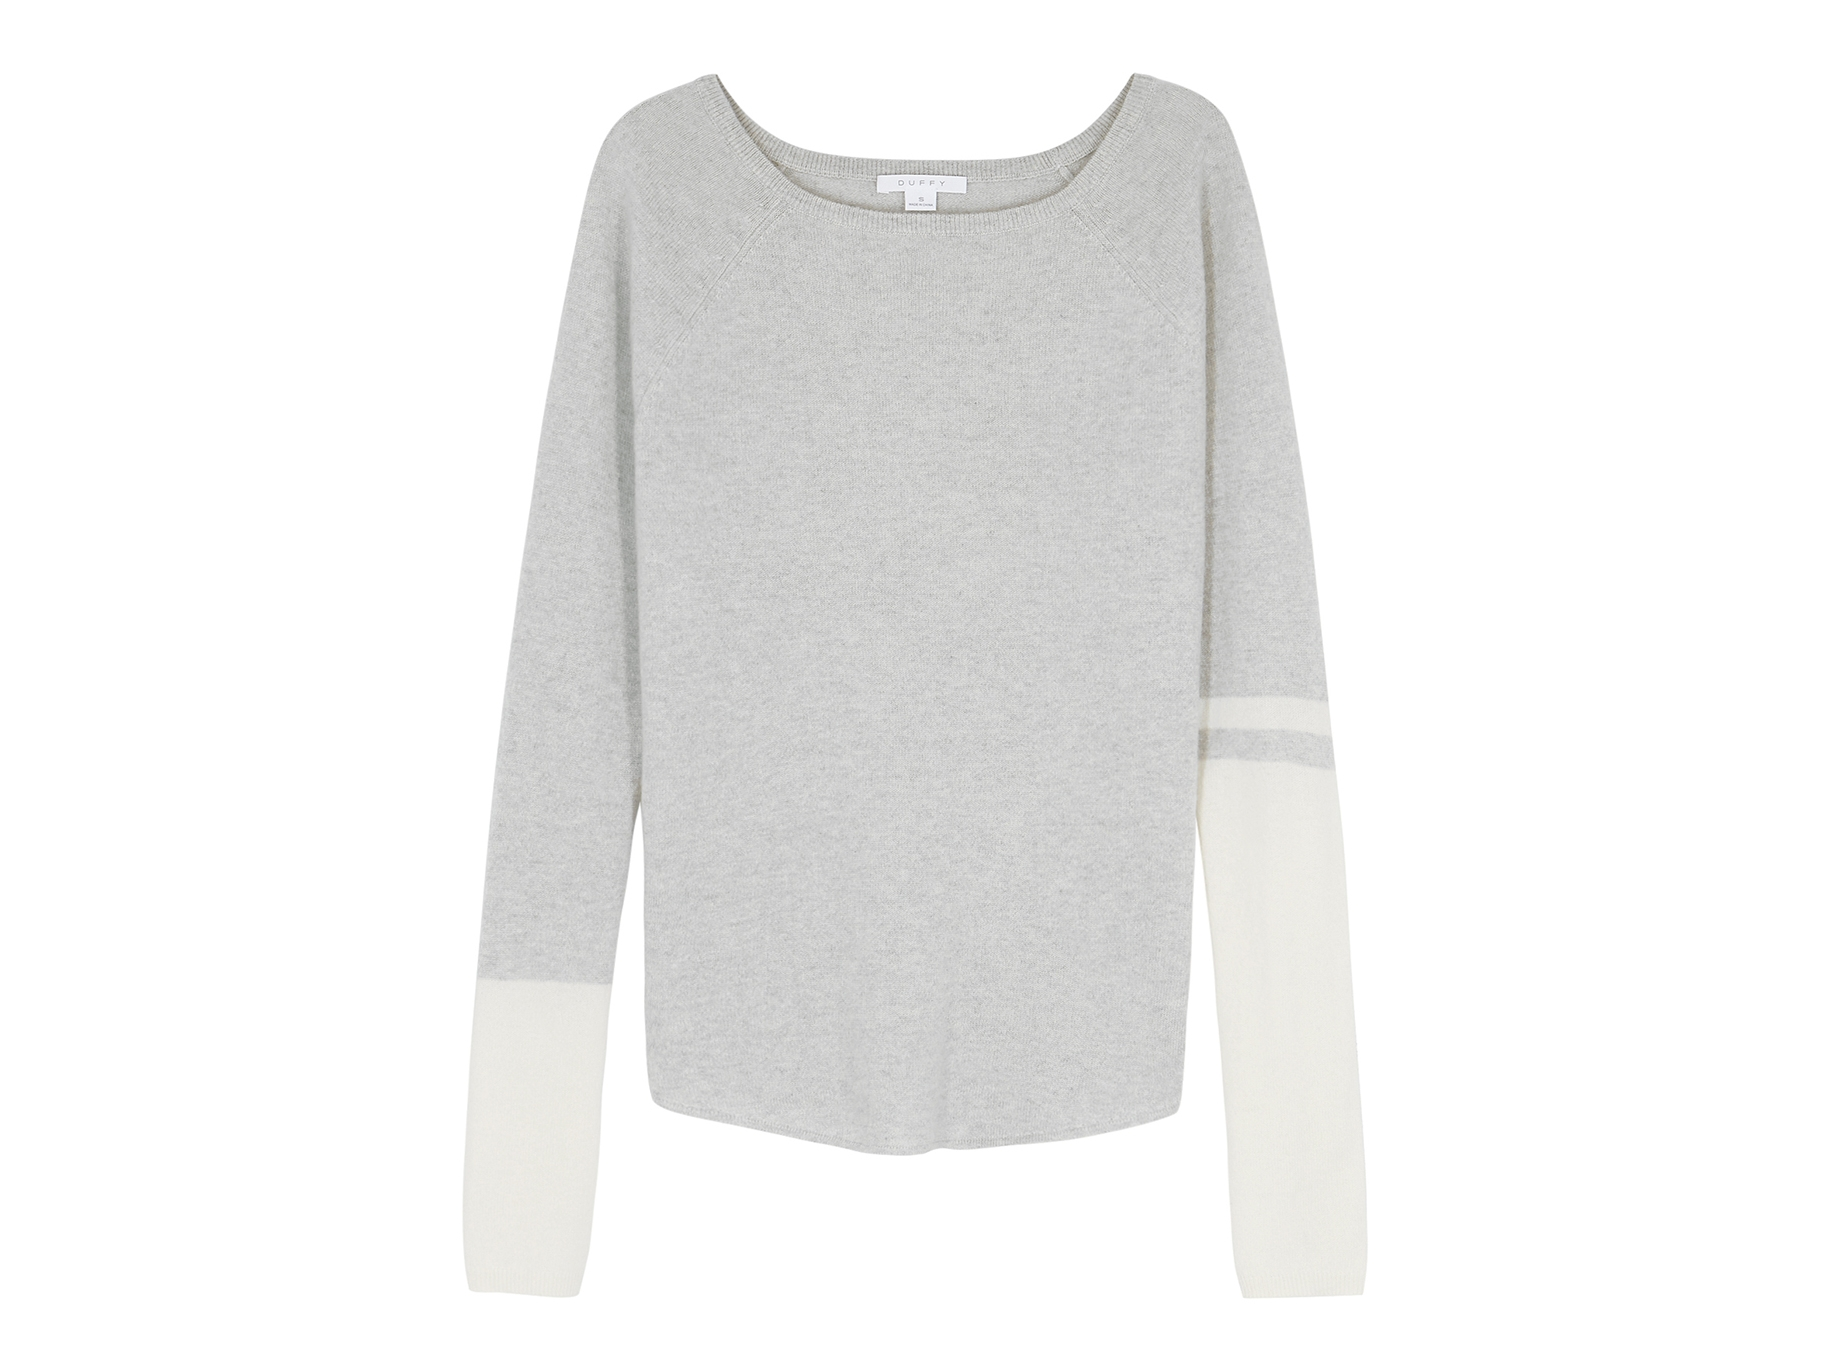 4bd2f8c228dc17 Duffy Pale grey cashmere jumper - Harvey Nichols